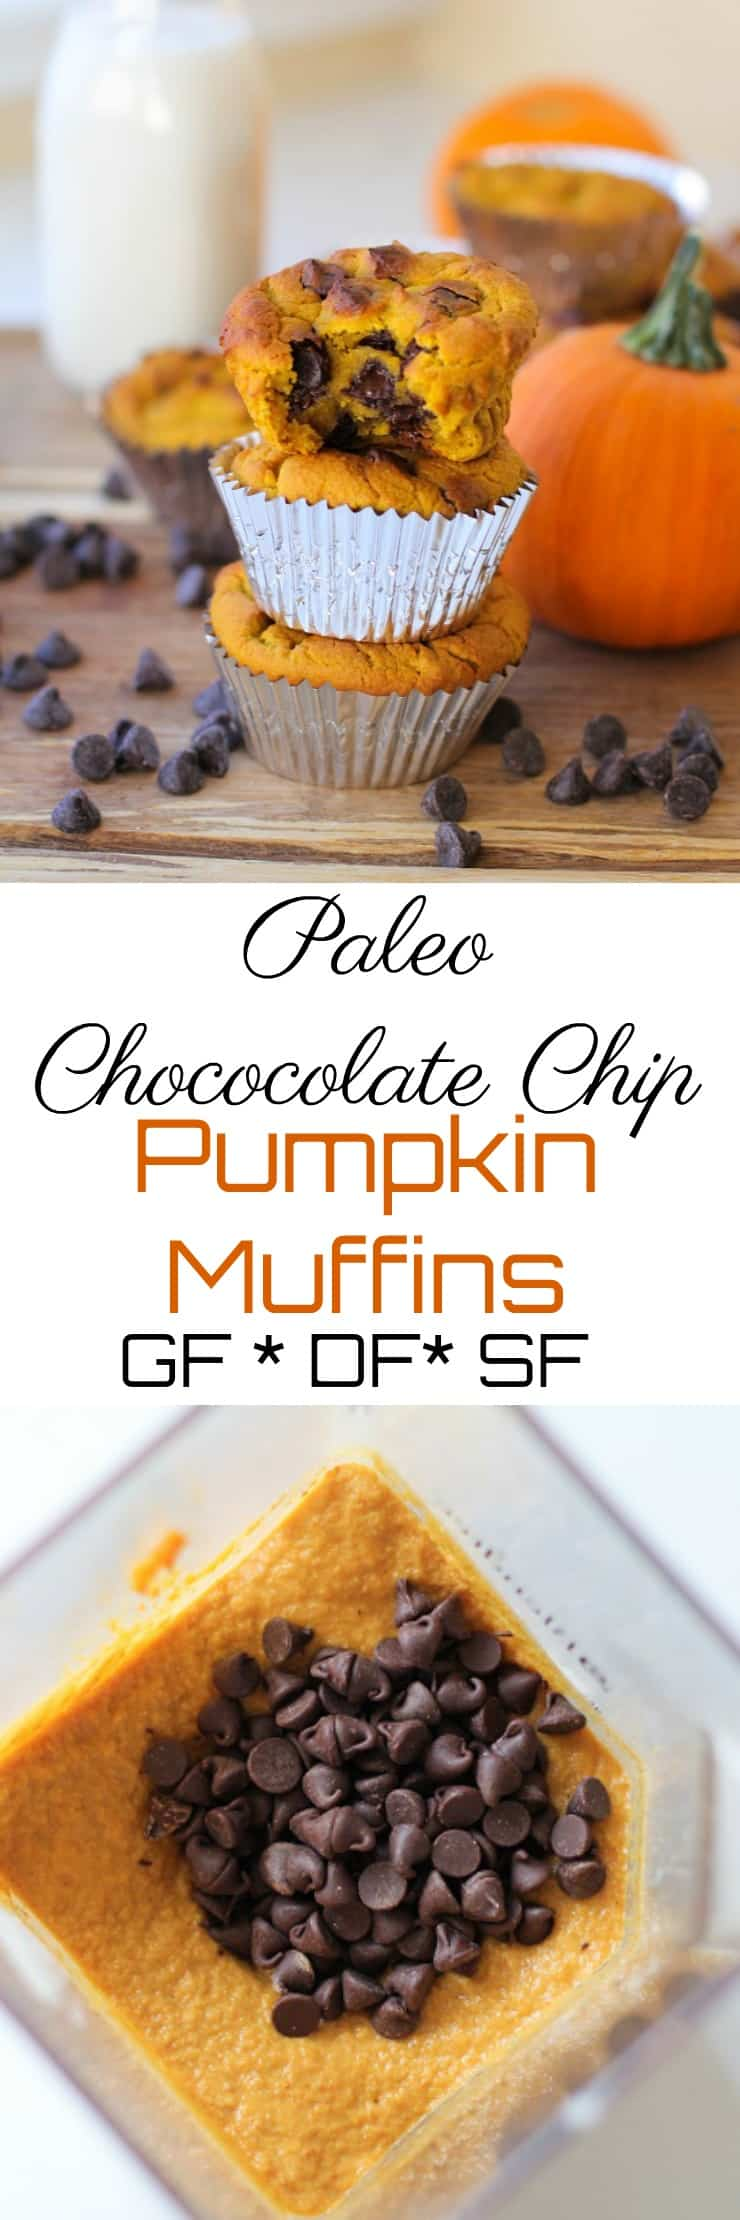 Paleo Chocolate Chip Muffins - grain-free, dairy-free, refined sugar-free, and healthy!